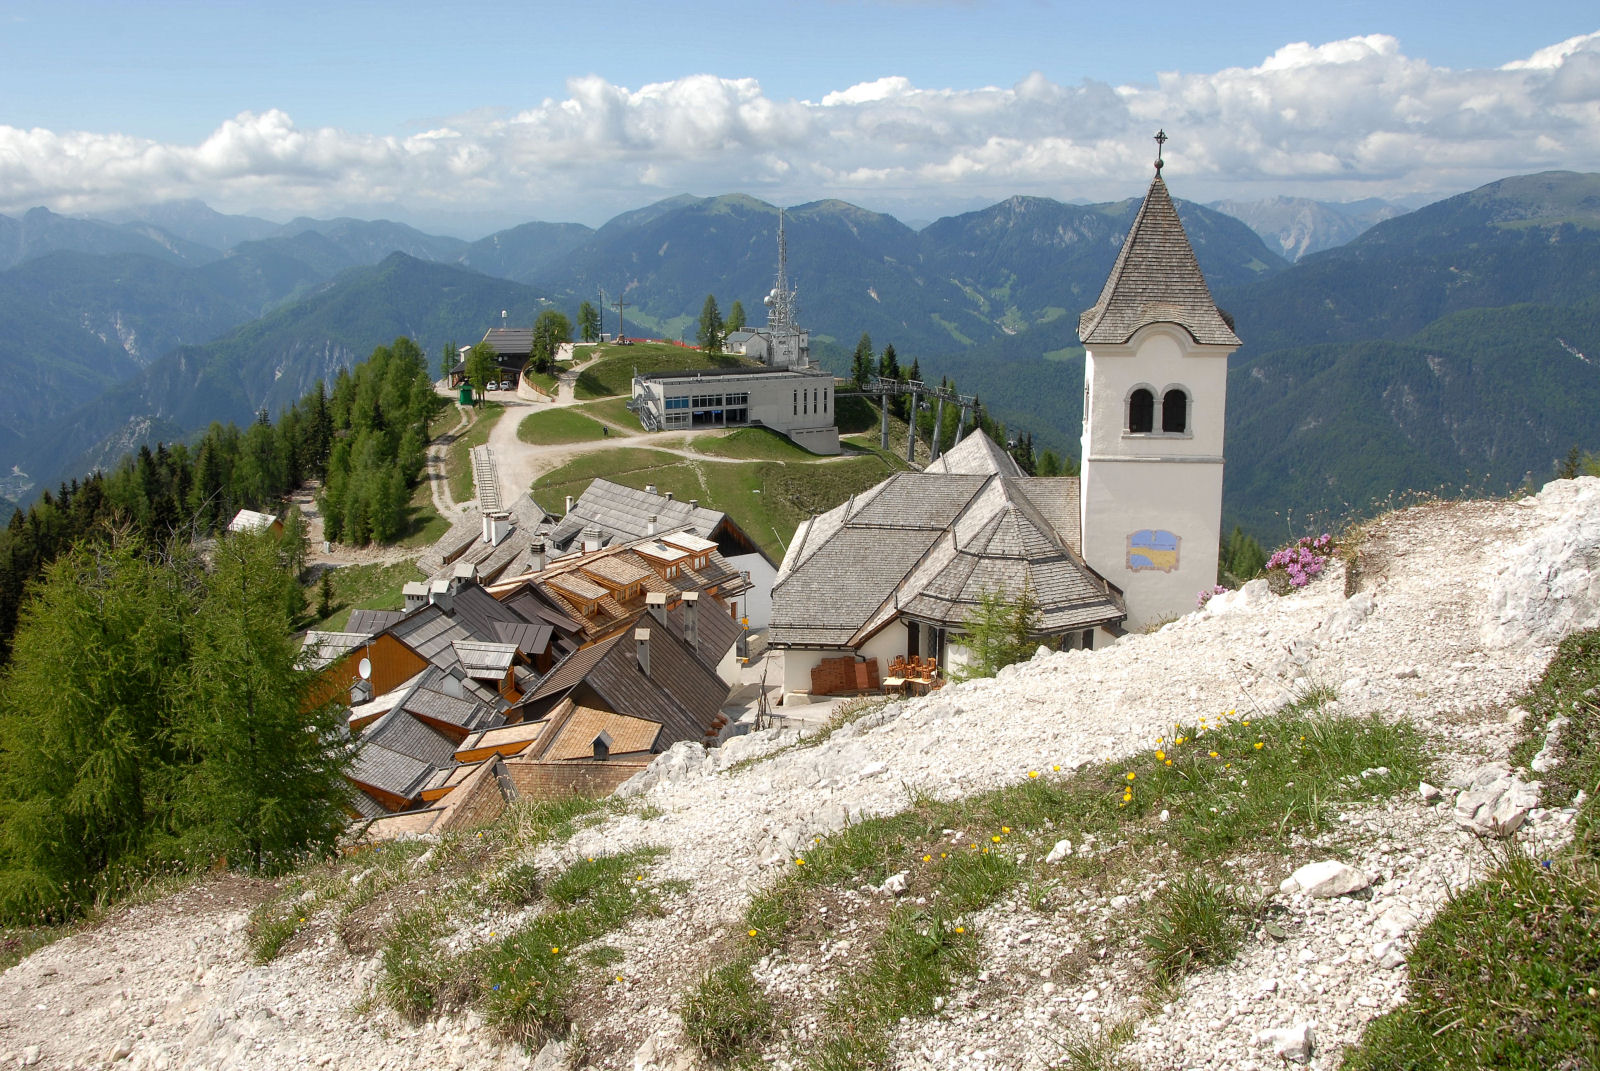 Monte Santo di Lussari with the pilgrimage church Santa Maria In Excelsis